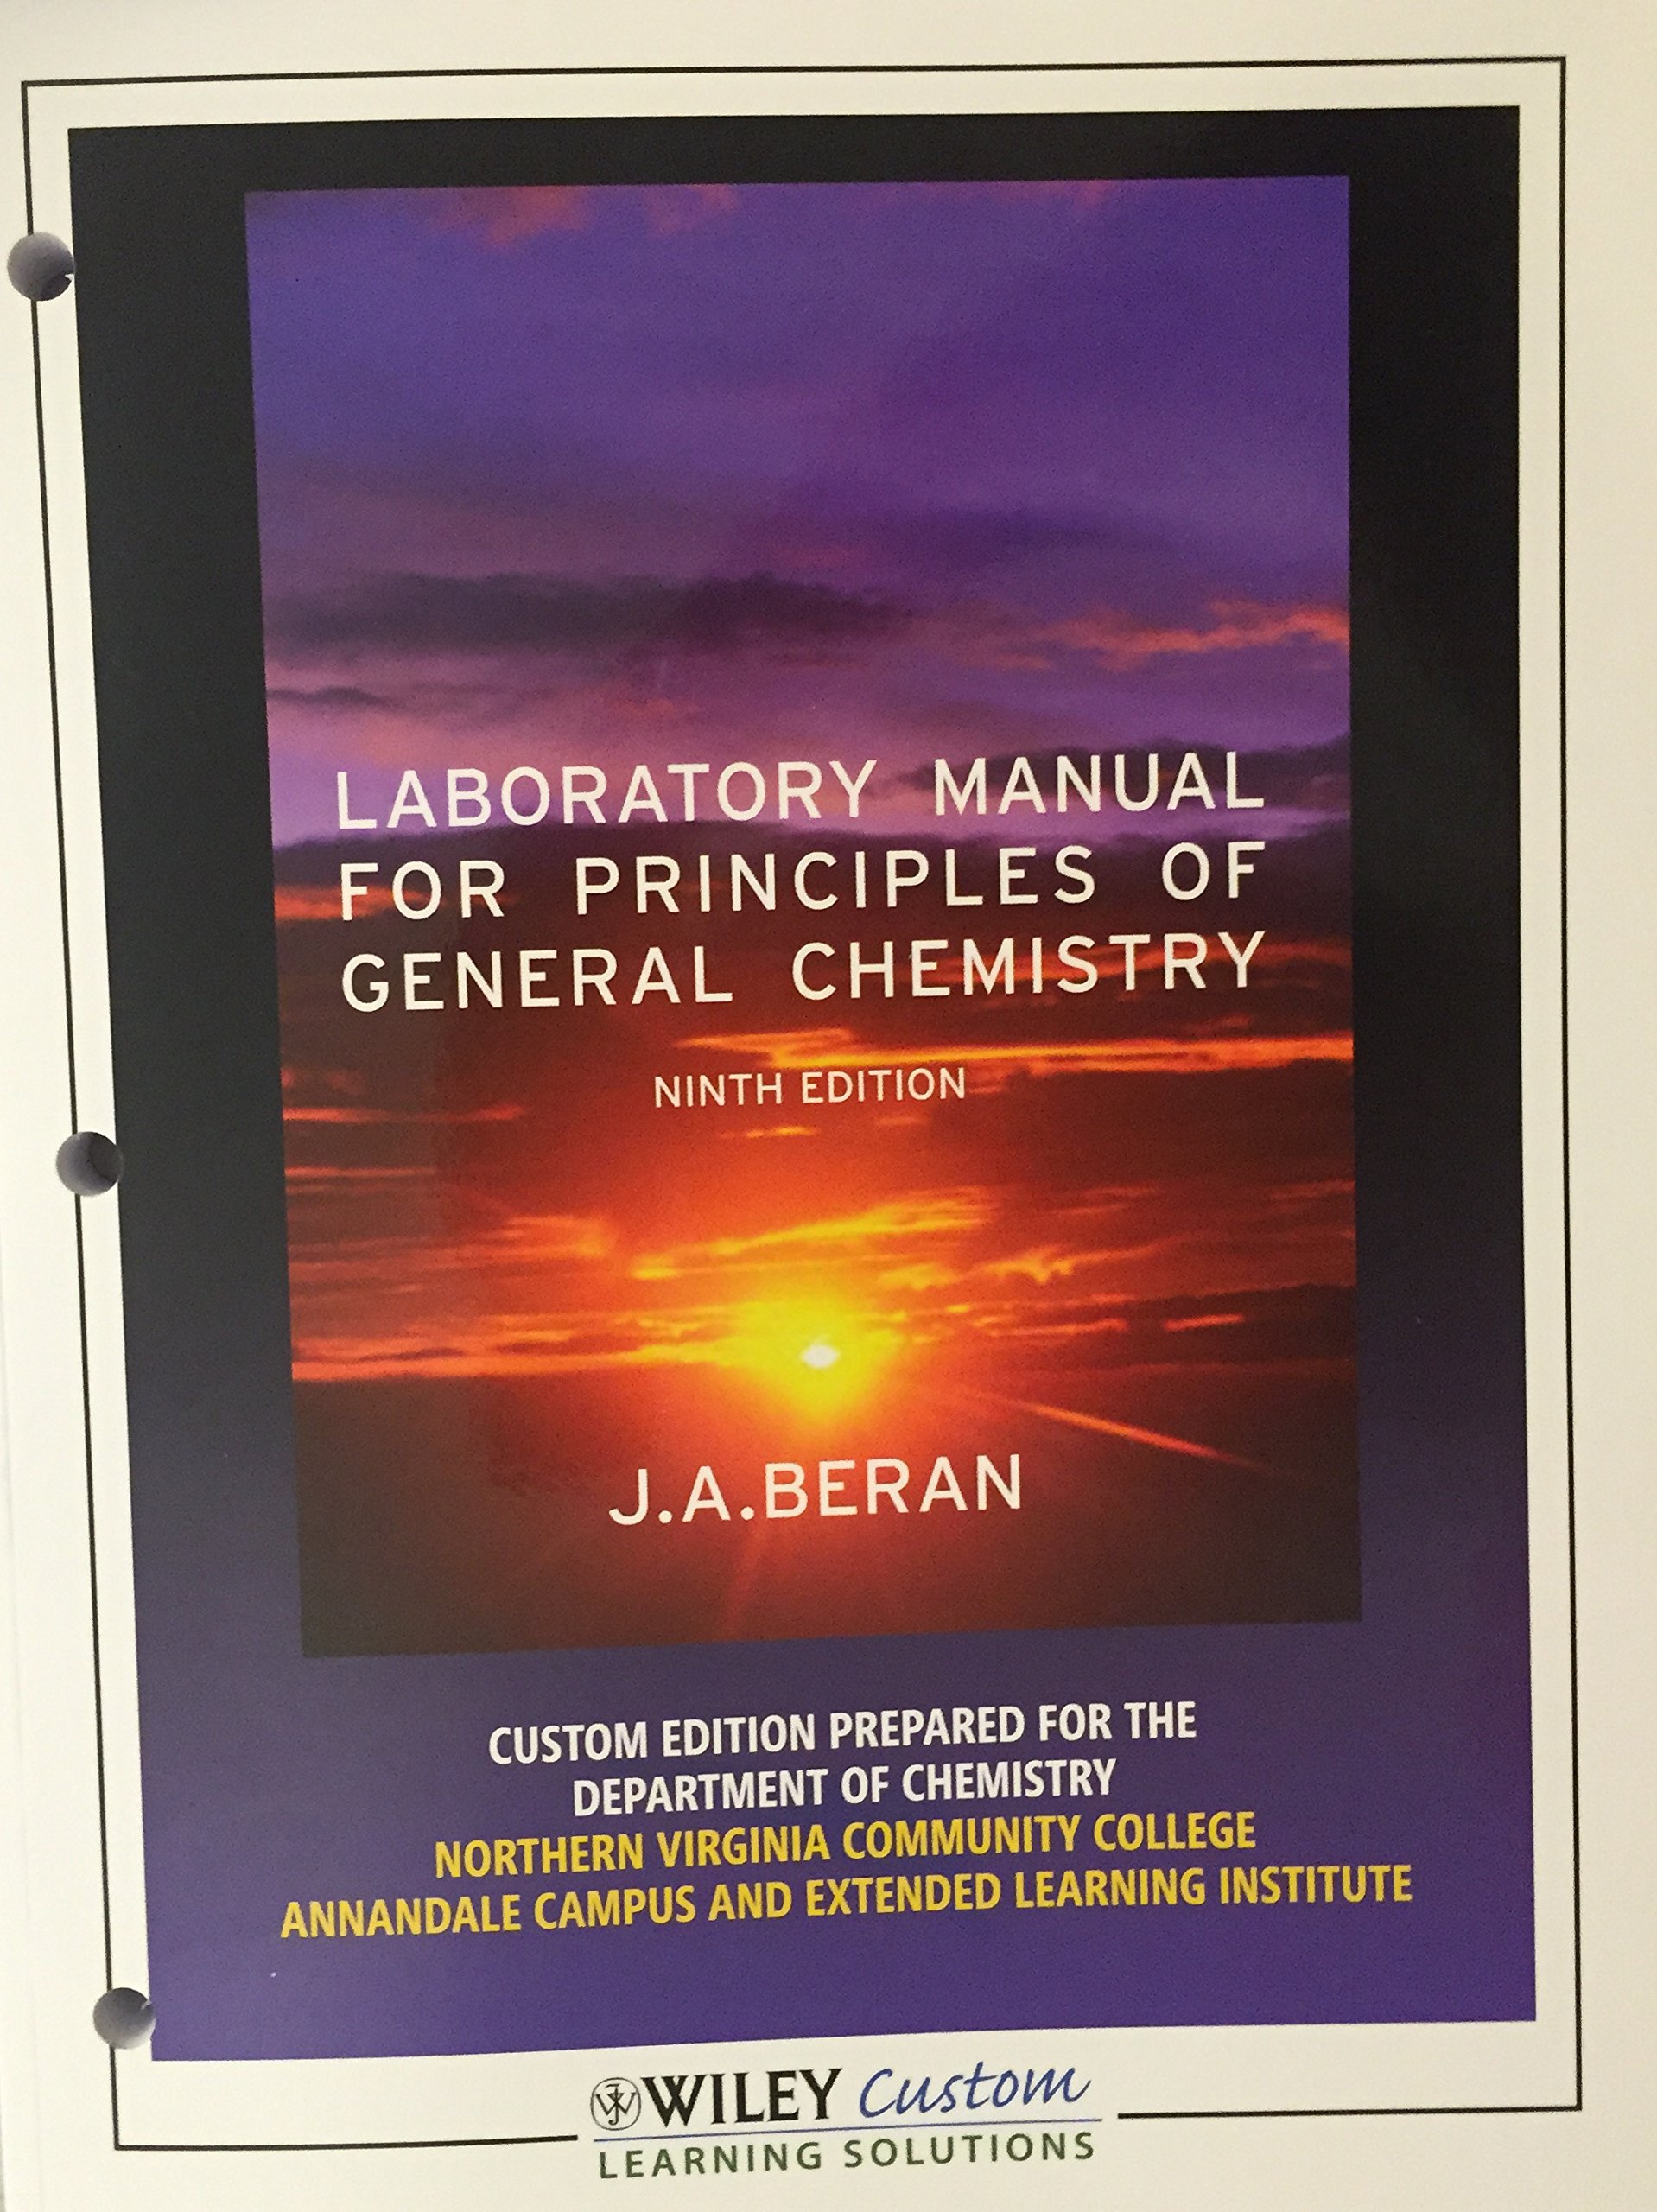 Laboratory Manual for Principles of General Chemistry 9th Edition Stevens  Institute of Technology: J.A. Beran: 9781118168028: Amazon.com: Books